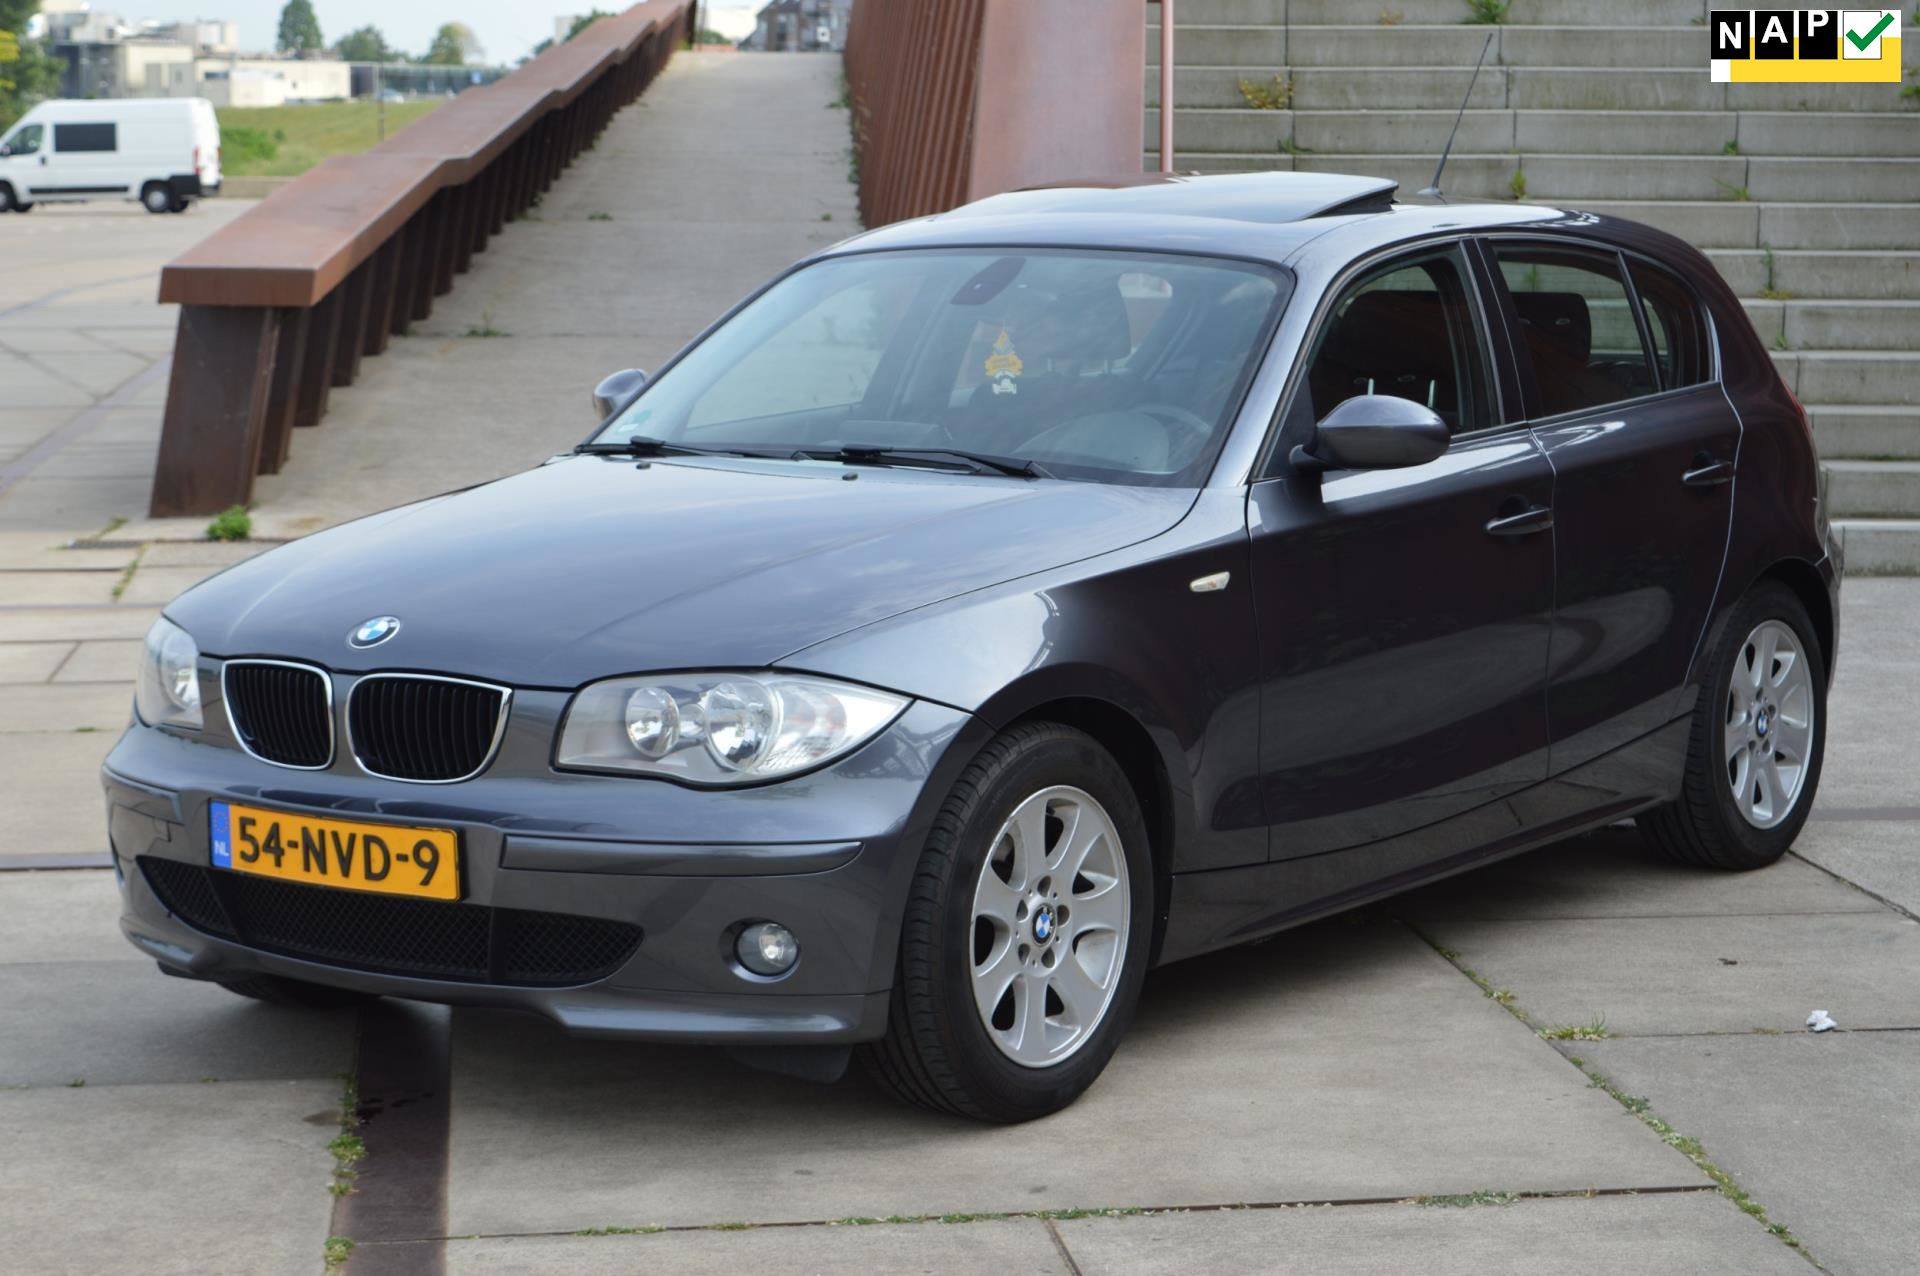 BMW 1-serie occasion - Dealer Outlet Cuijk b.v.